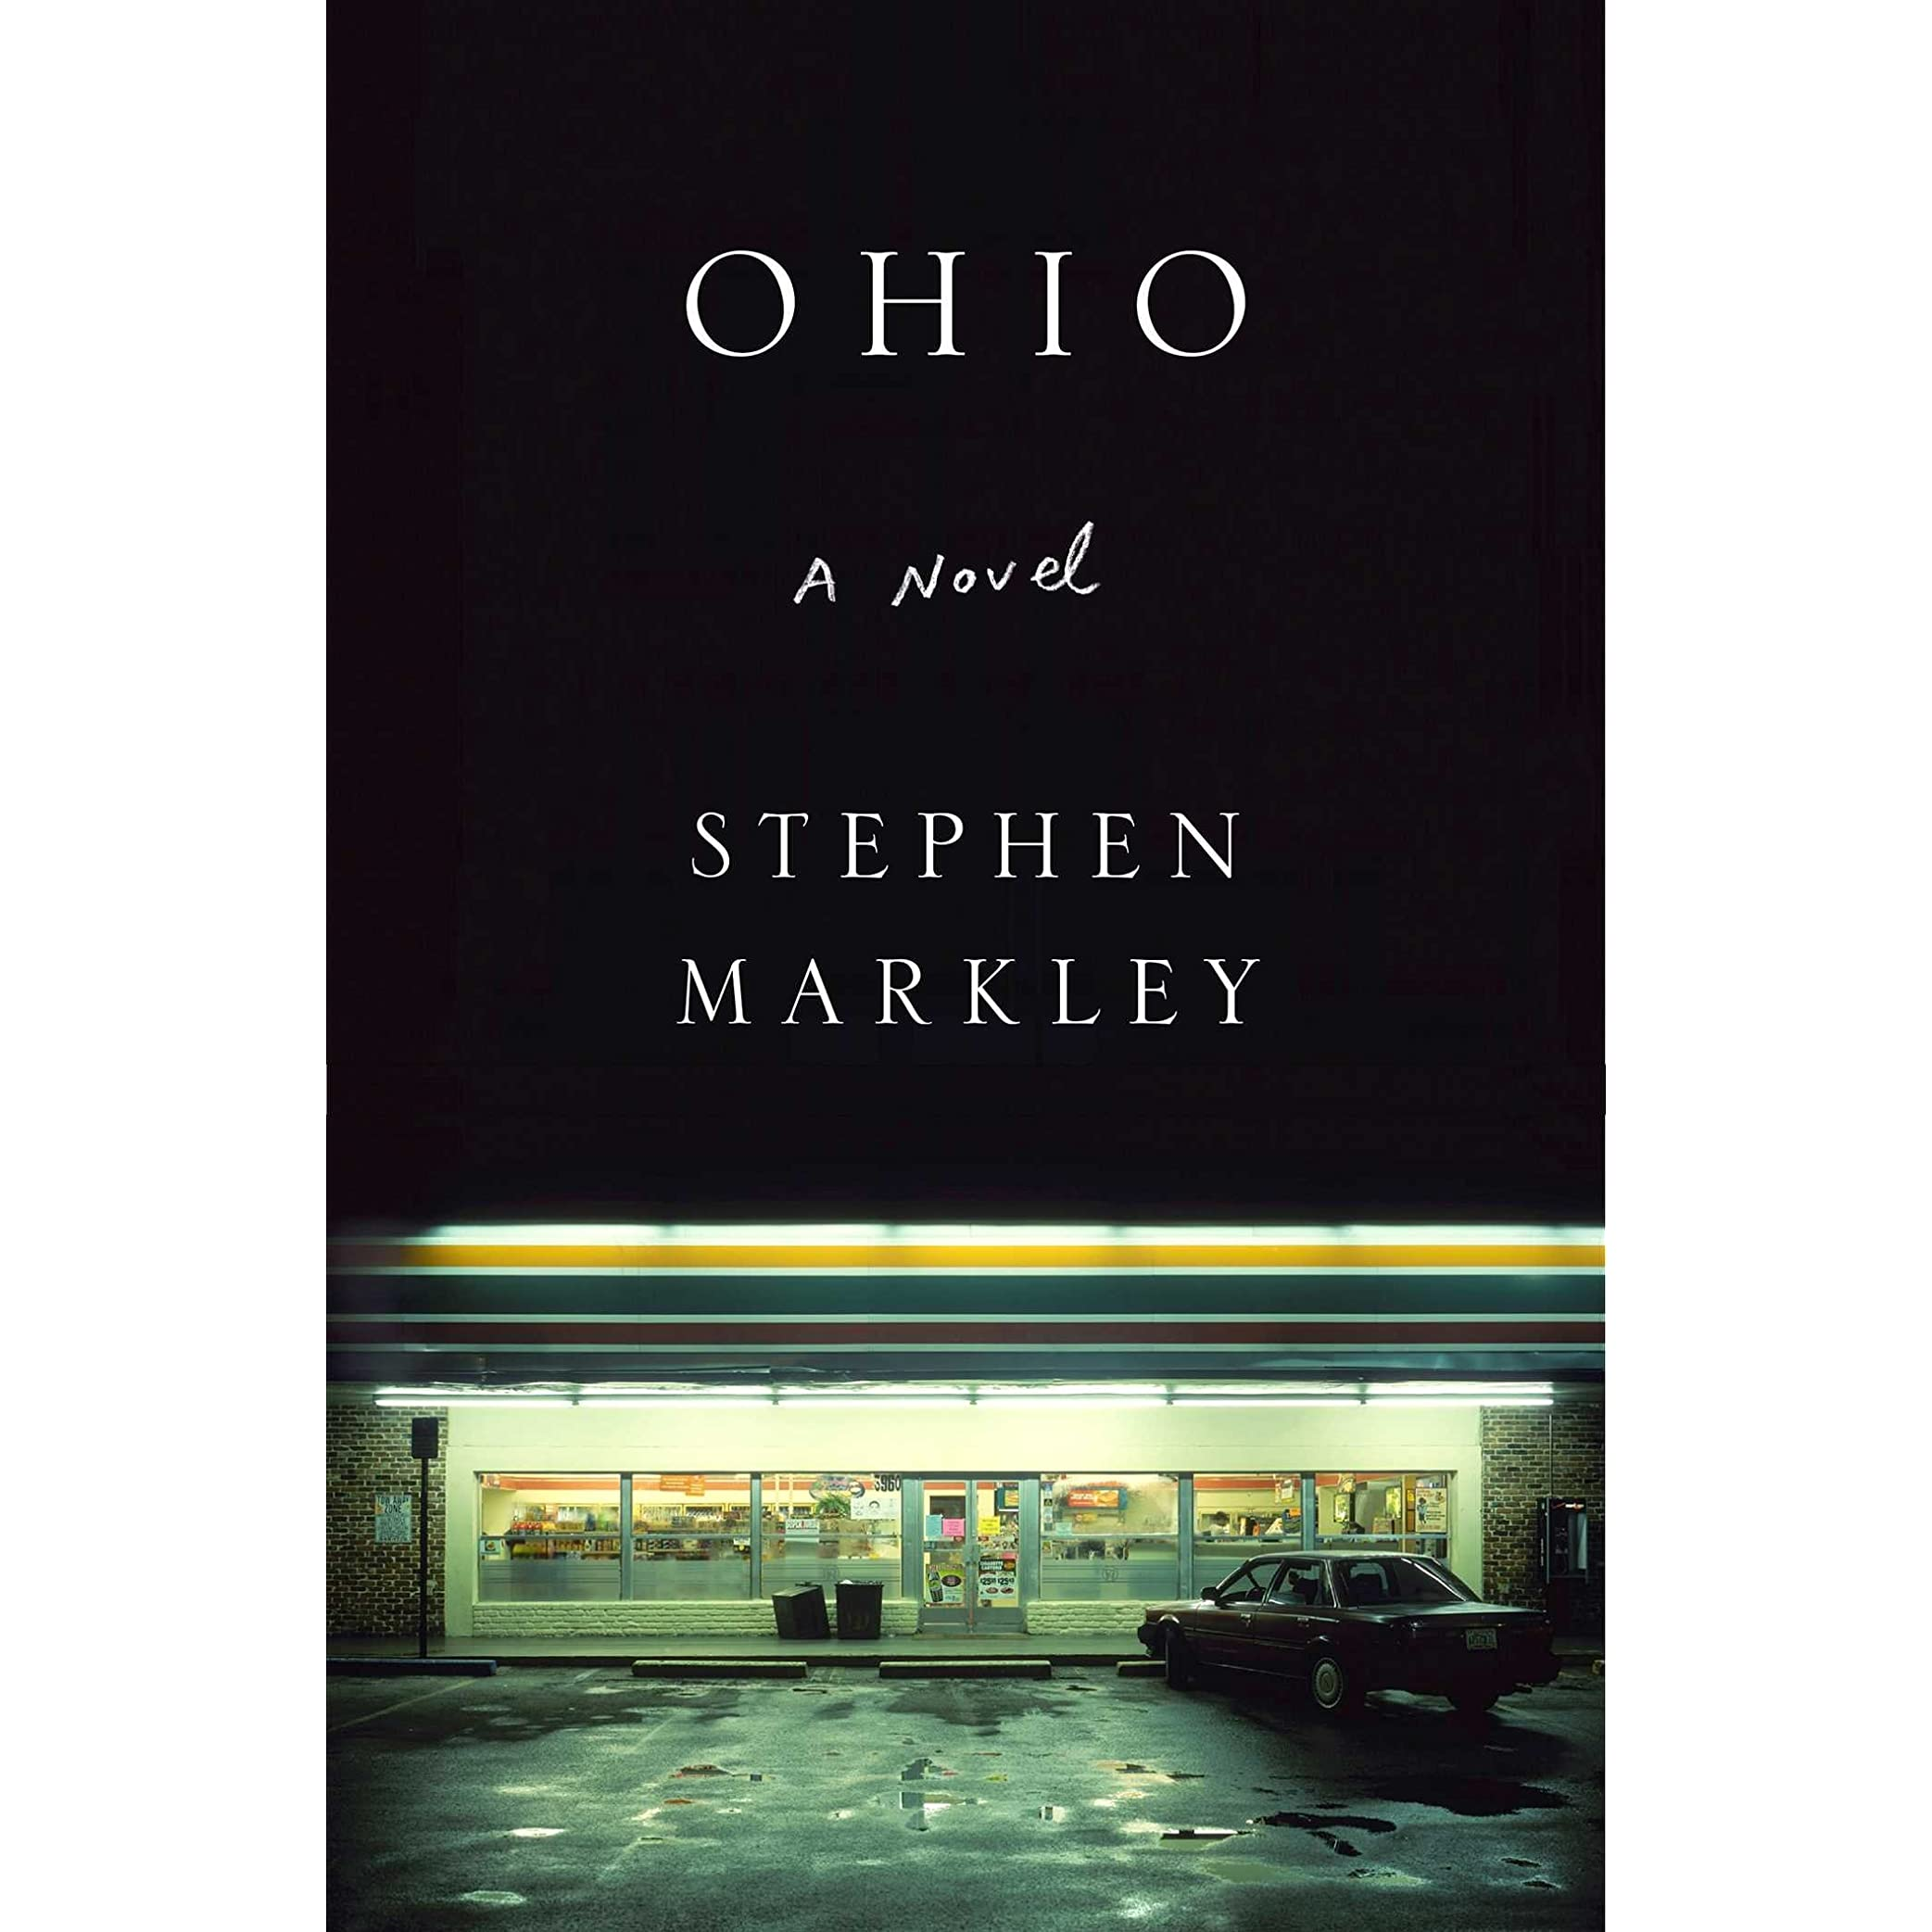 Ohio By Stephen Markley Your Trailer May Not Have Been Originally Wired The Way Depicted And